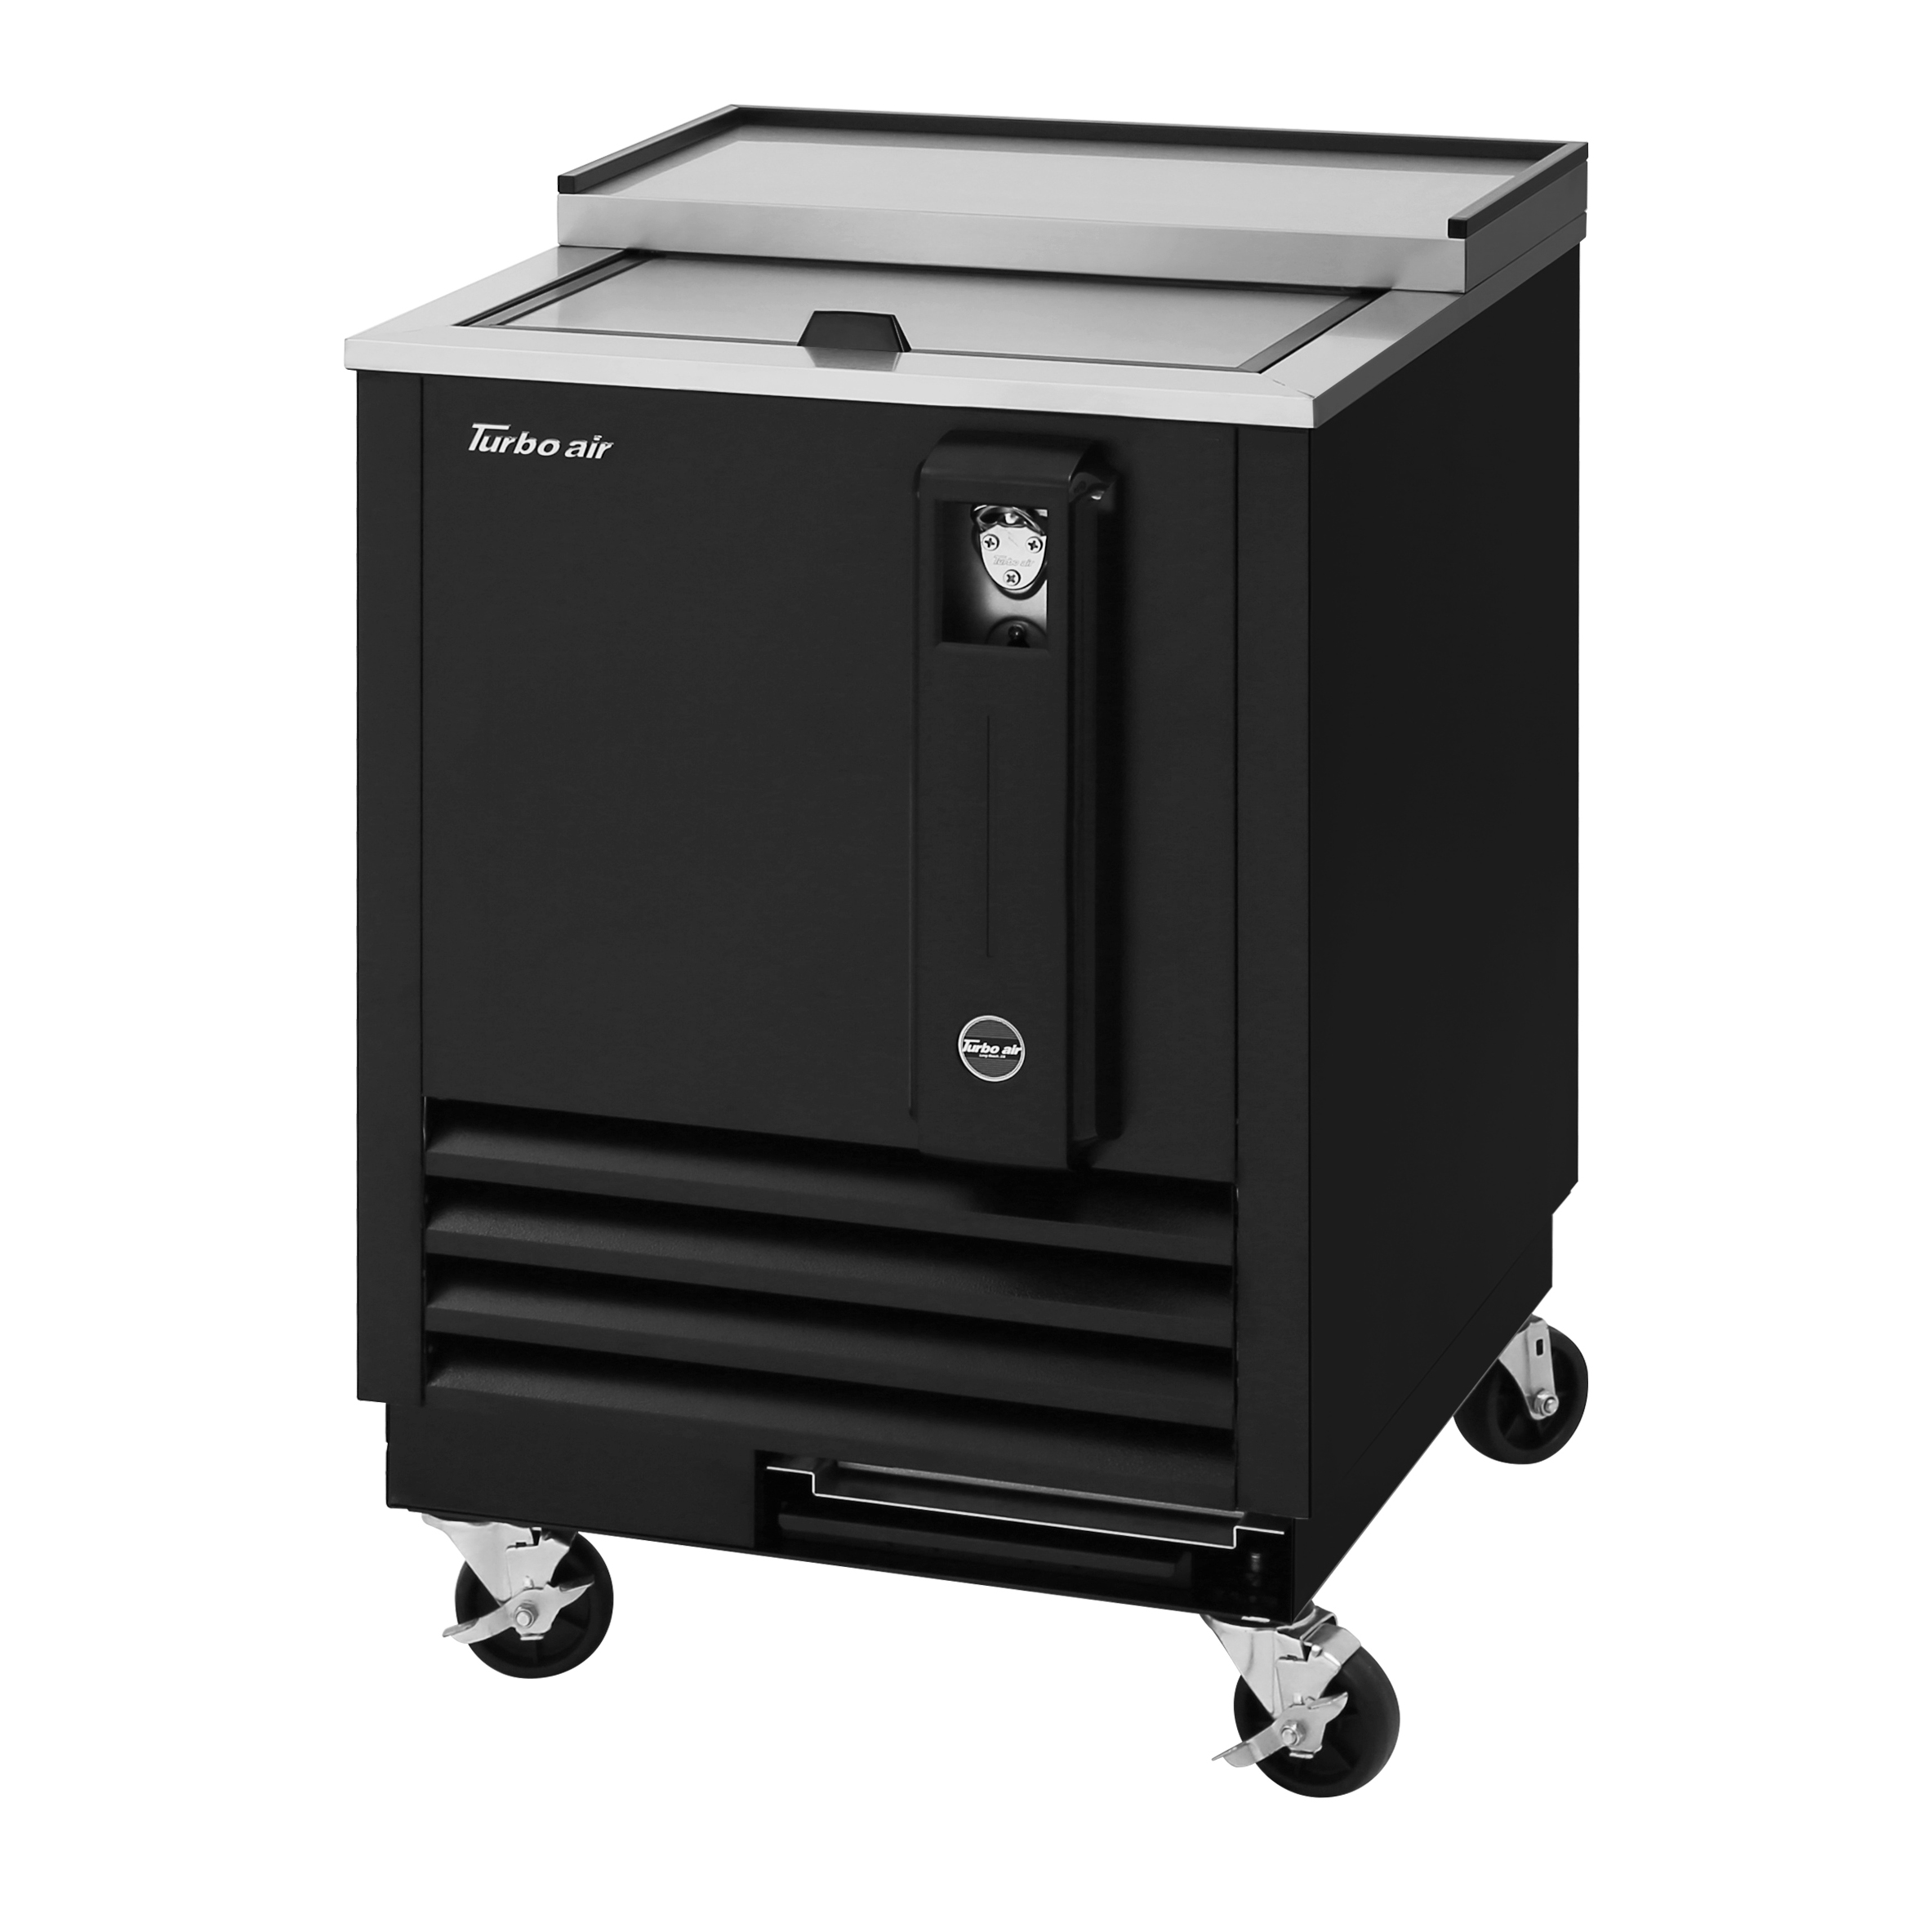 Turbo Air TBC-24SB-N6 bottle cooler